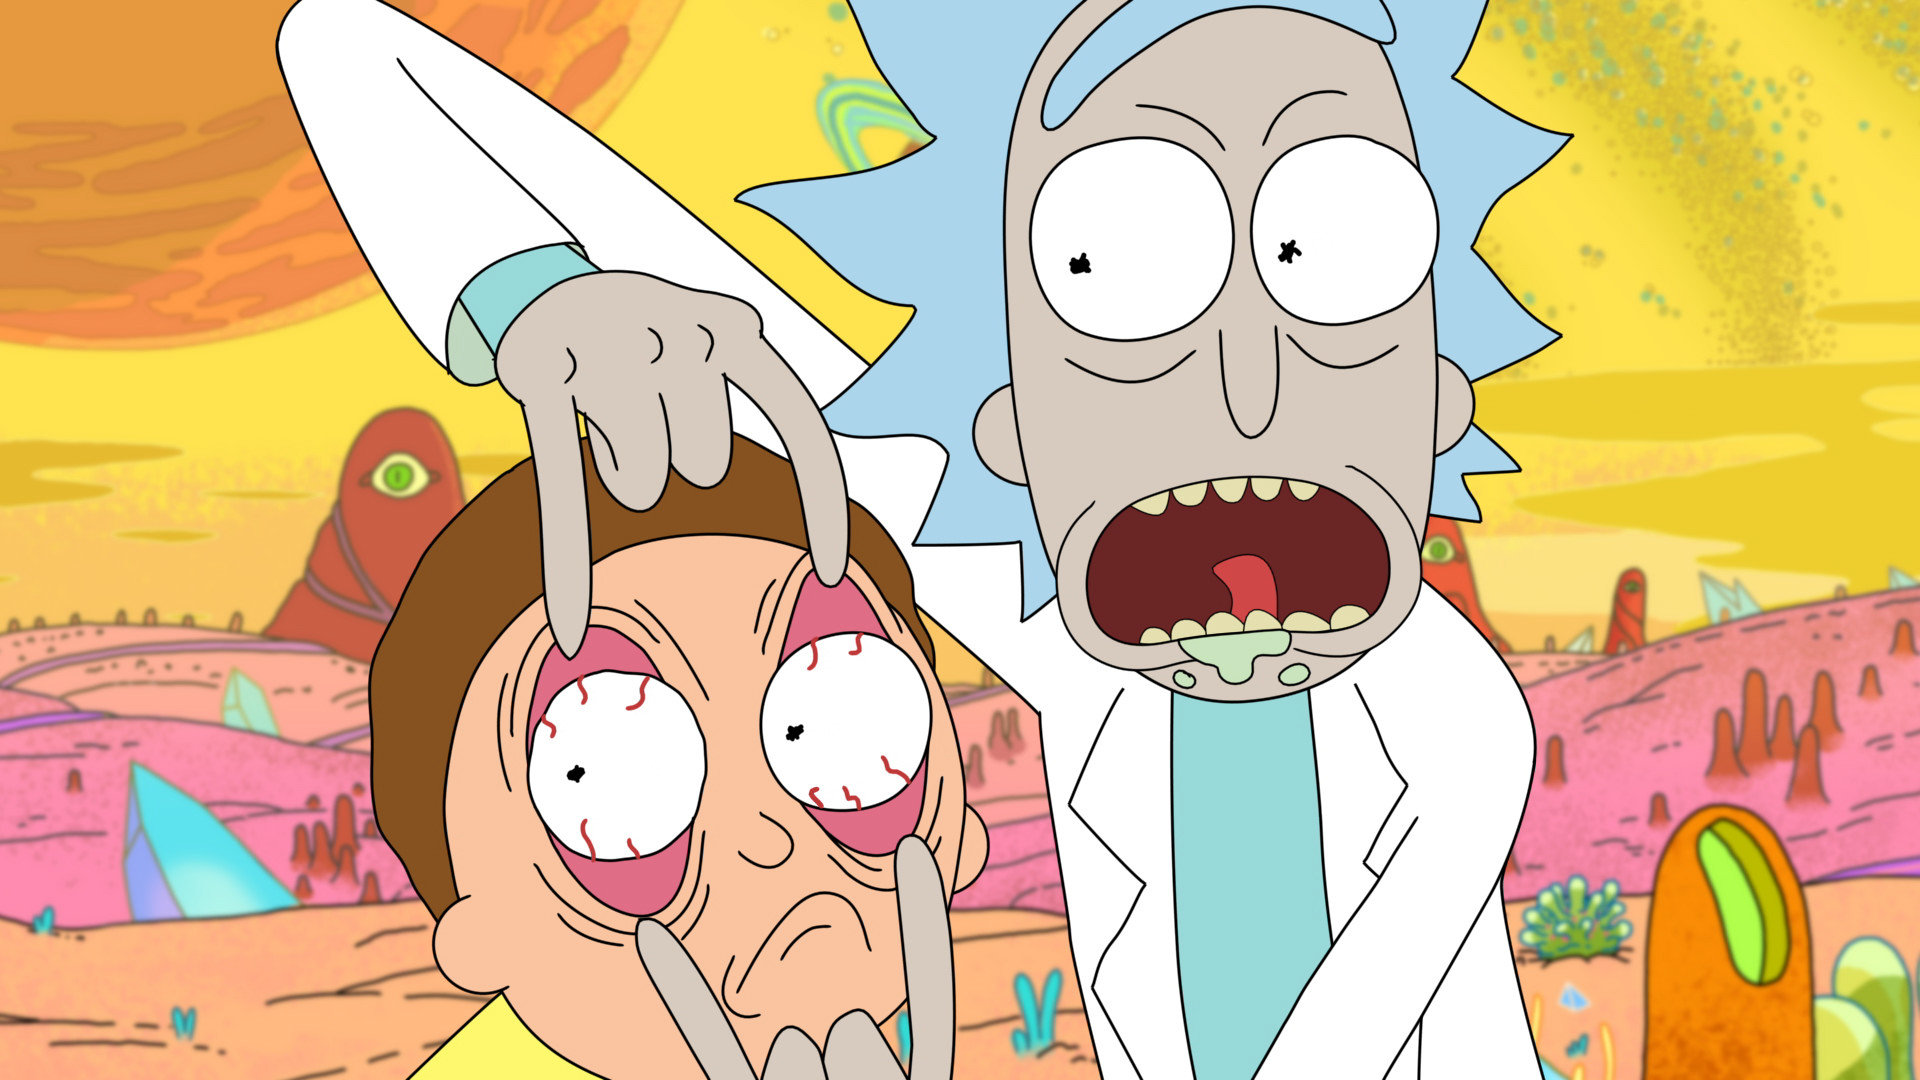 Download Full Hd Rick And Morty Pc Wallpaper Id 470658 For Free